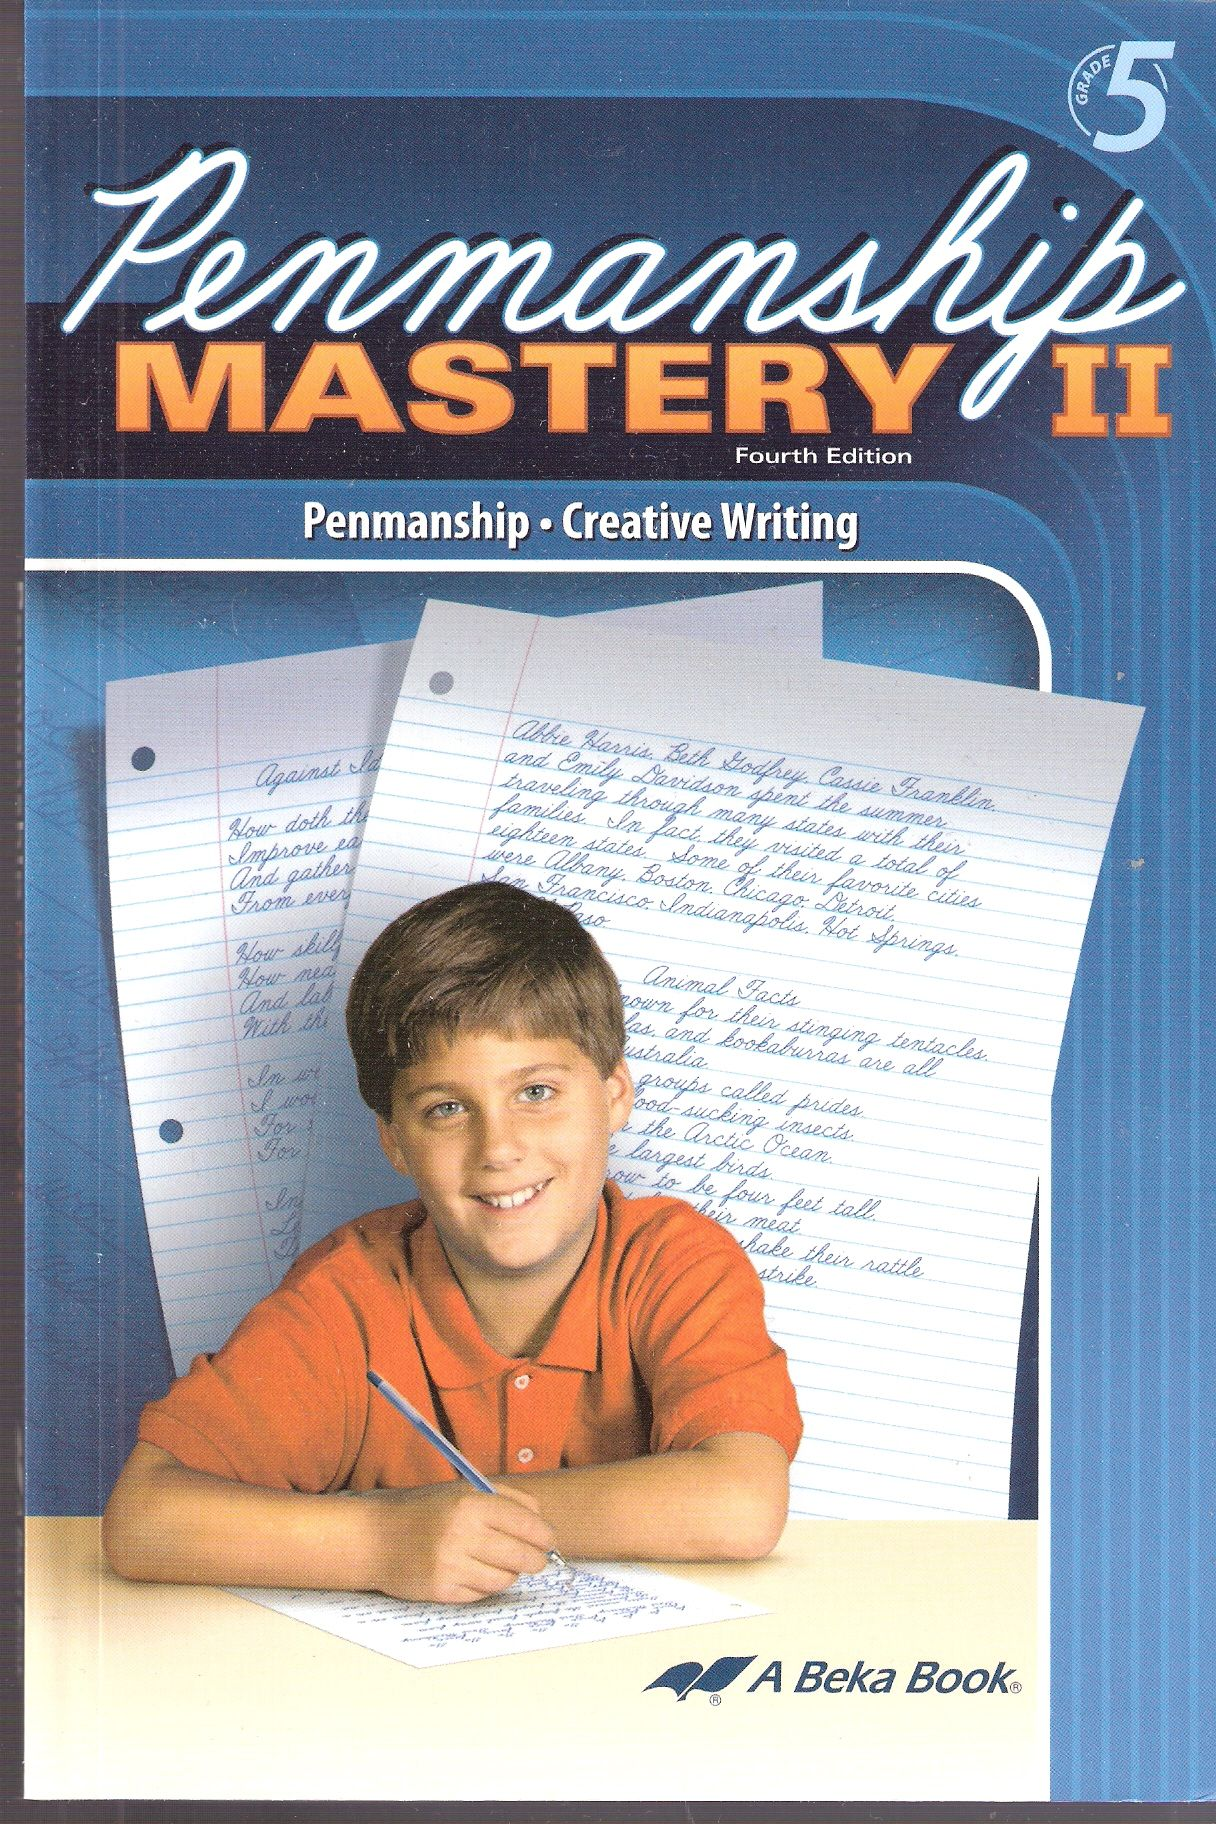 Abeka Penmanship Mastery 2 4th Edition Gives Instruction